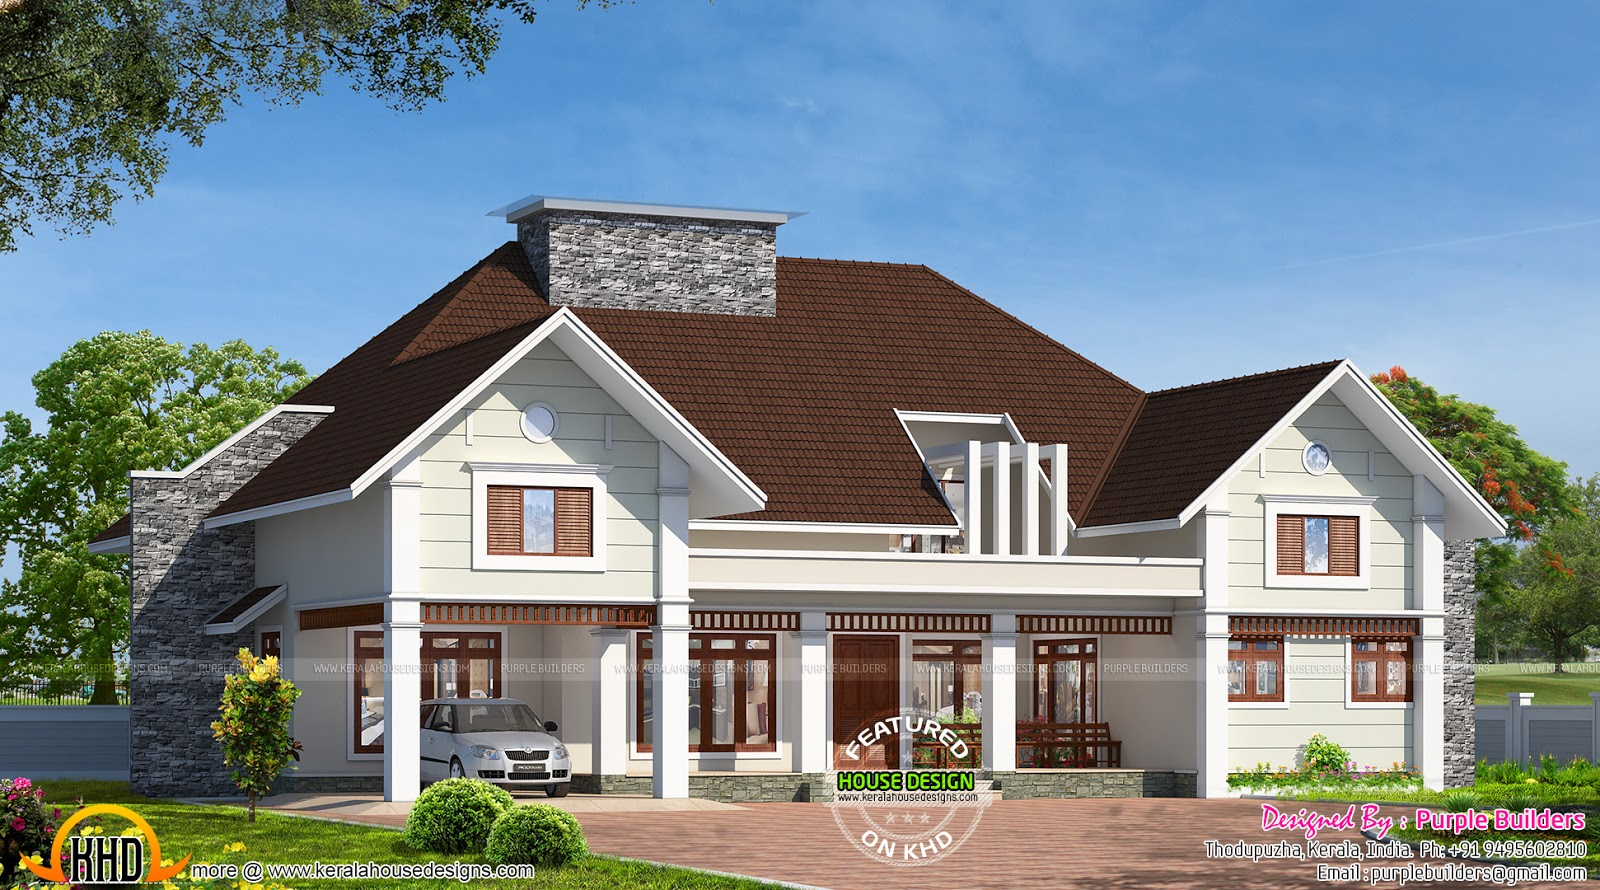 Bungalow house in kerala kerala home design and floor plans for Plan of bungalow in india